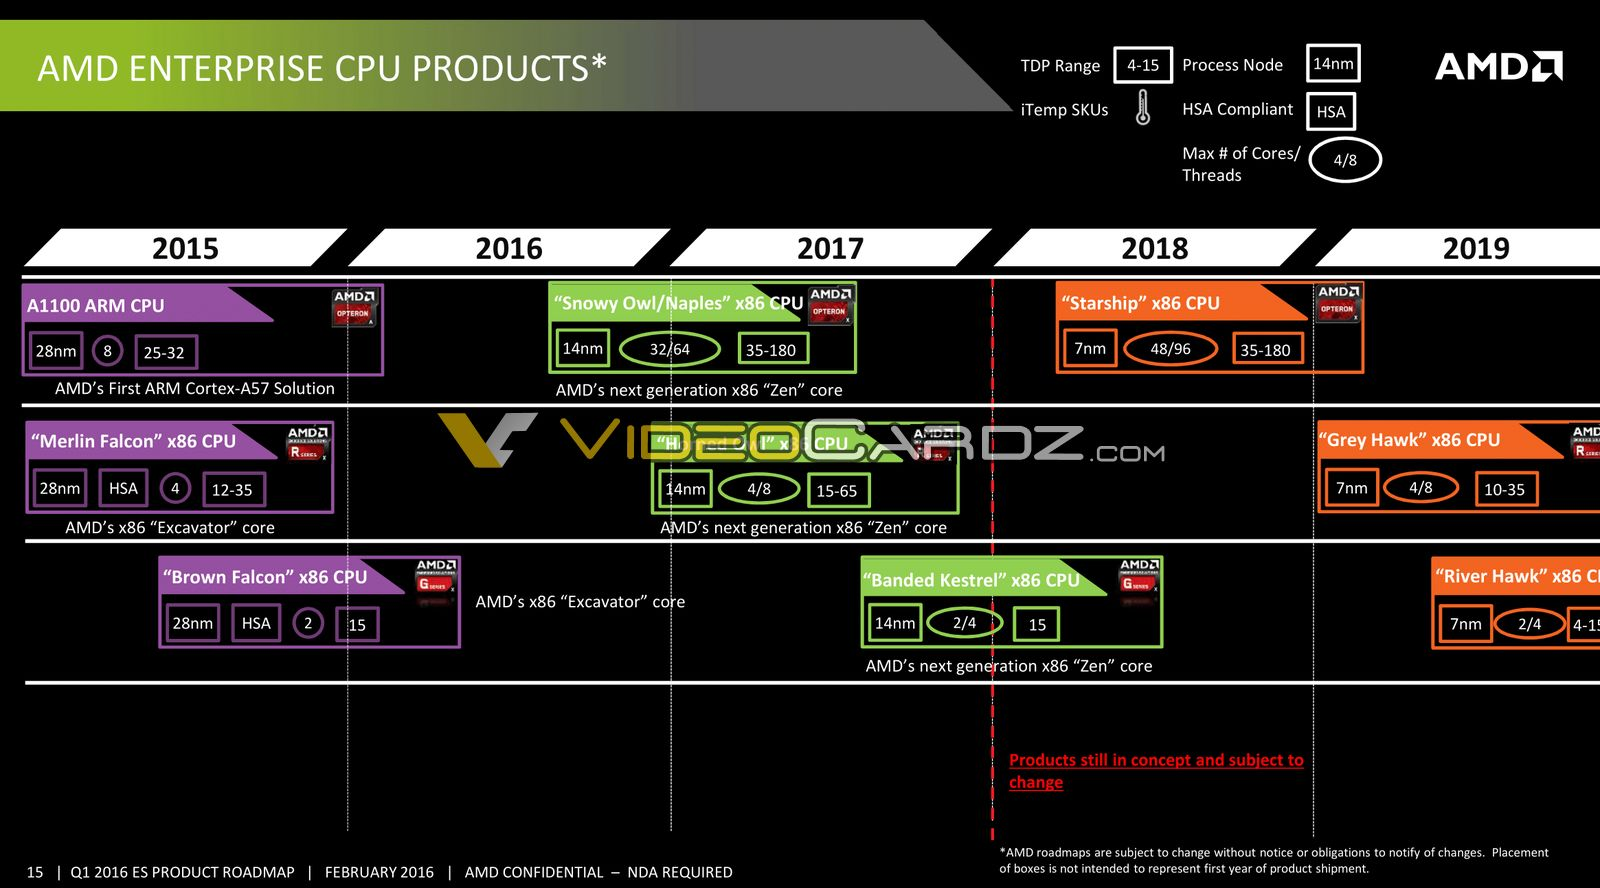 Amd Leaked Roadmap Confirms 7nm Starship Cpu With 48 Zen 2 Cores